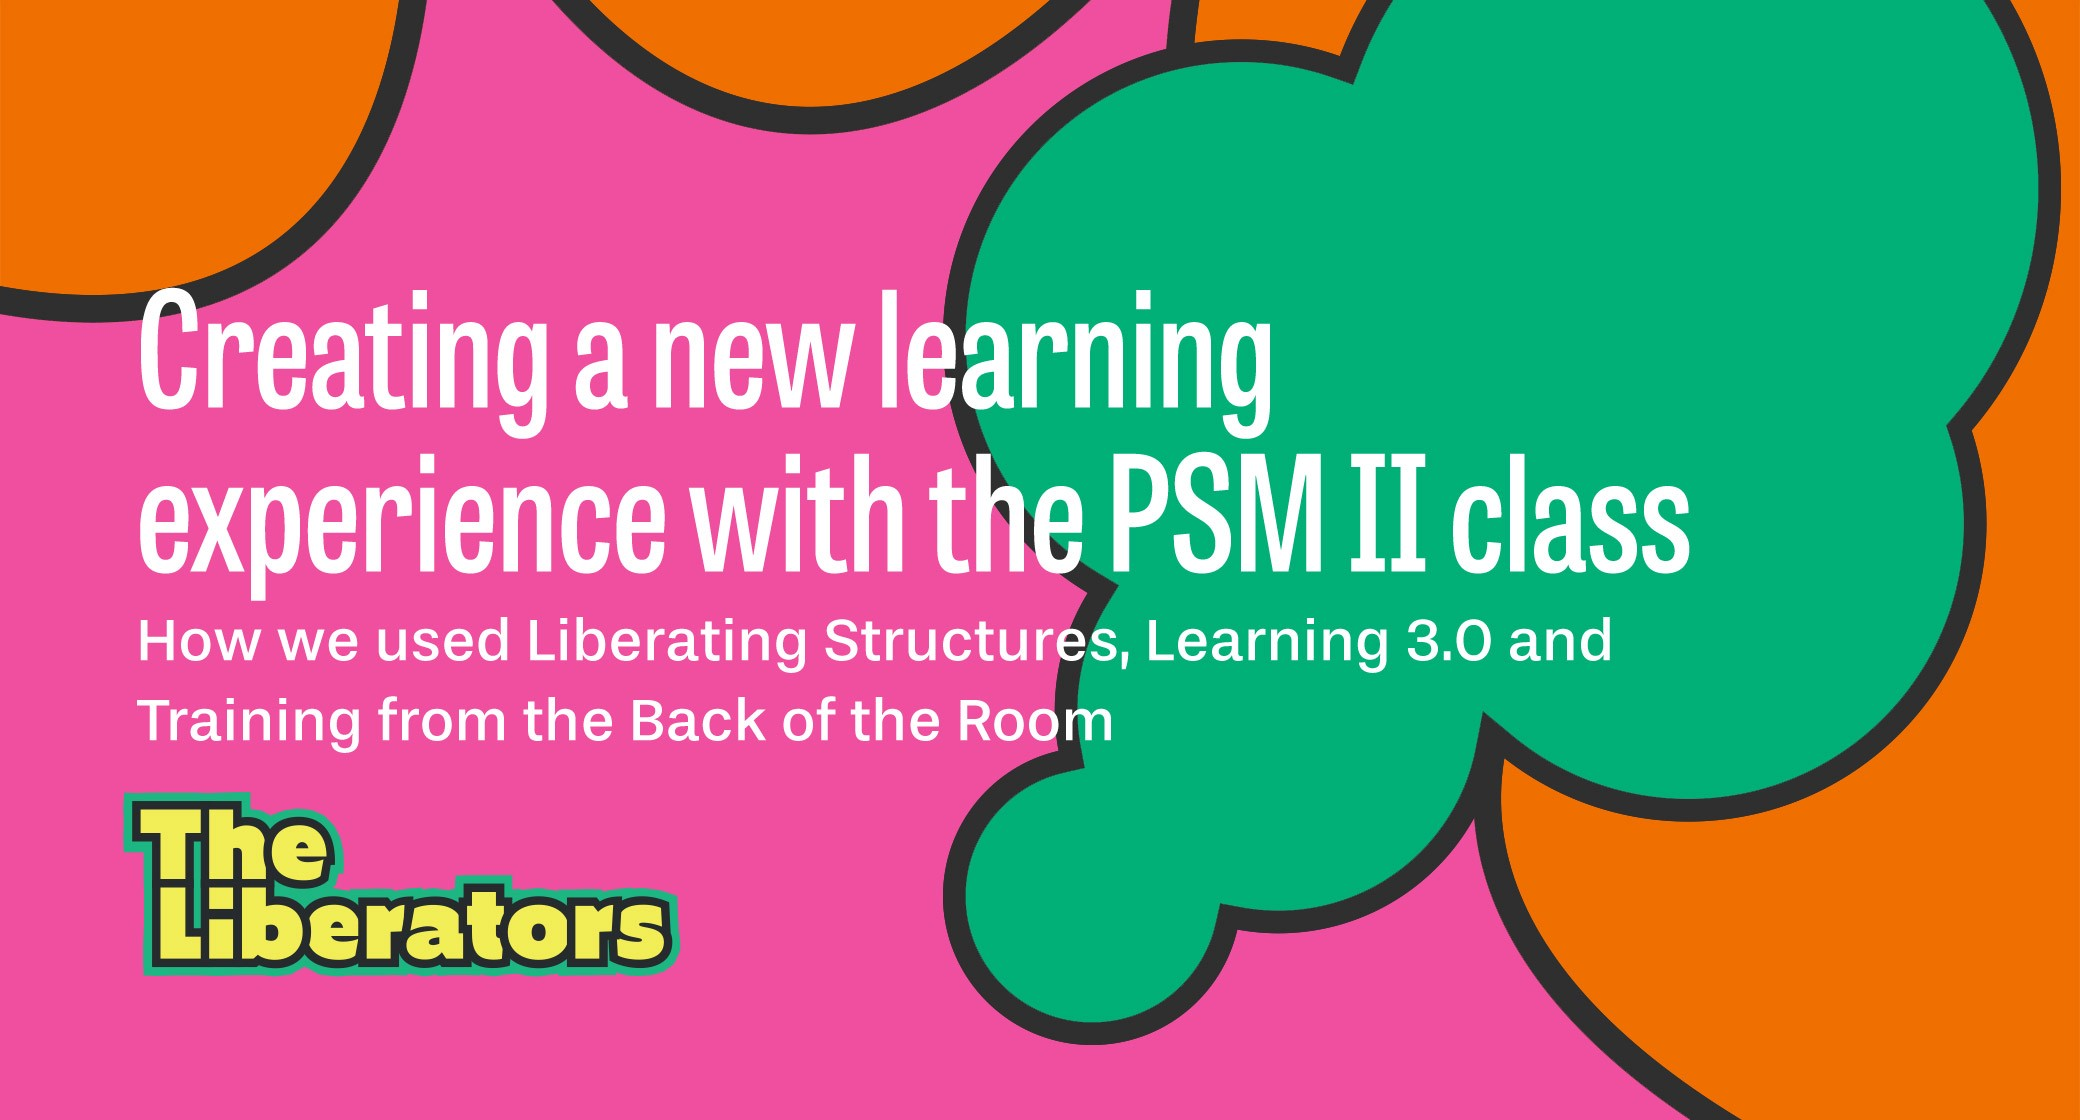 Creating a new learning experience with the PSM II class